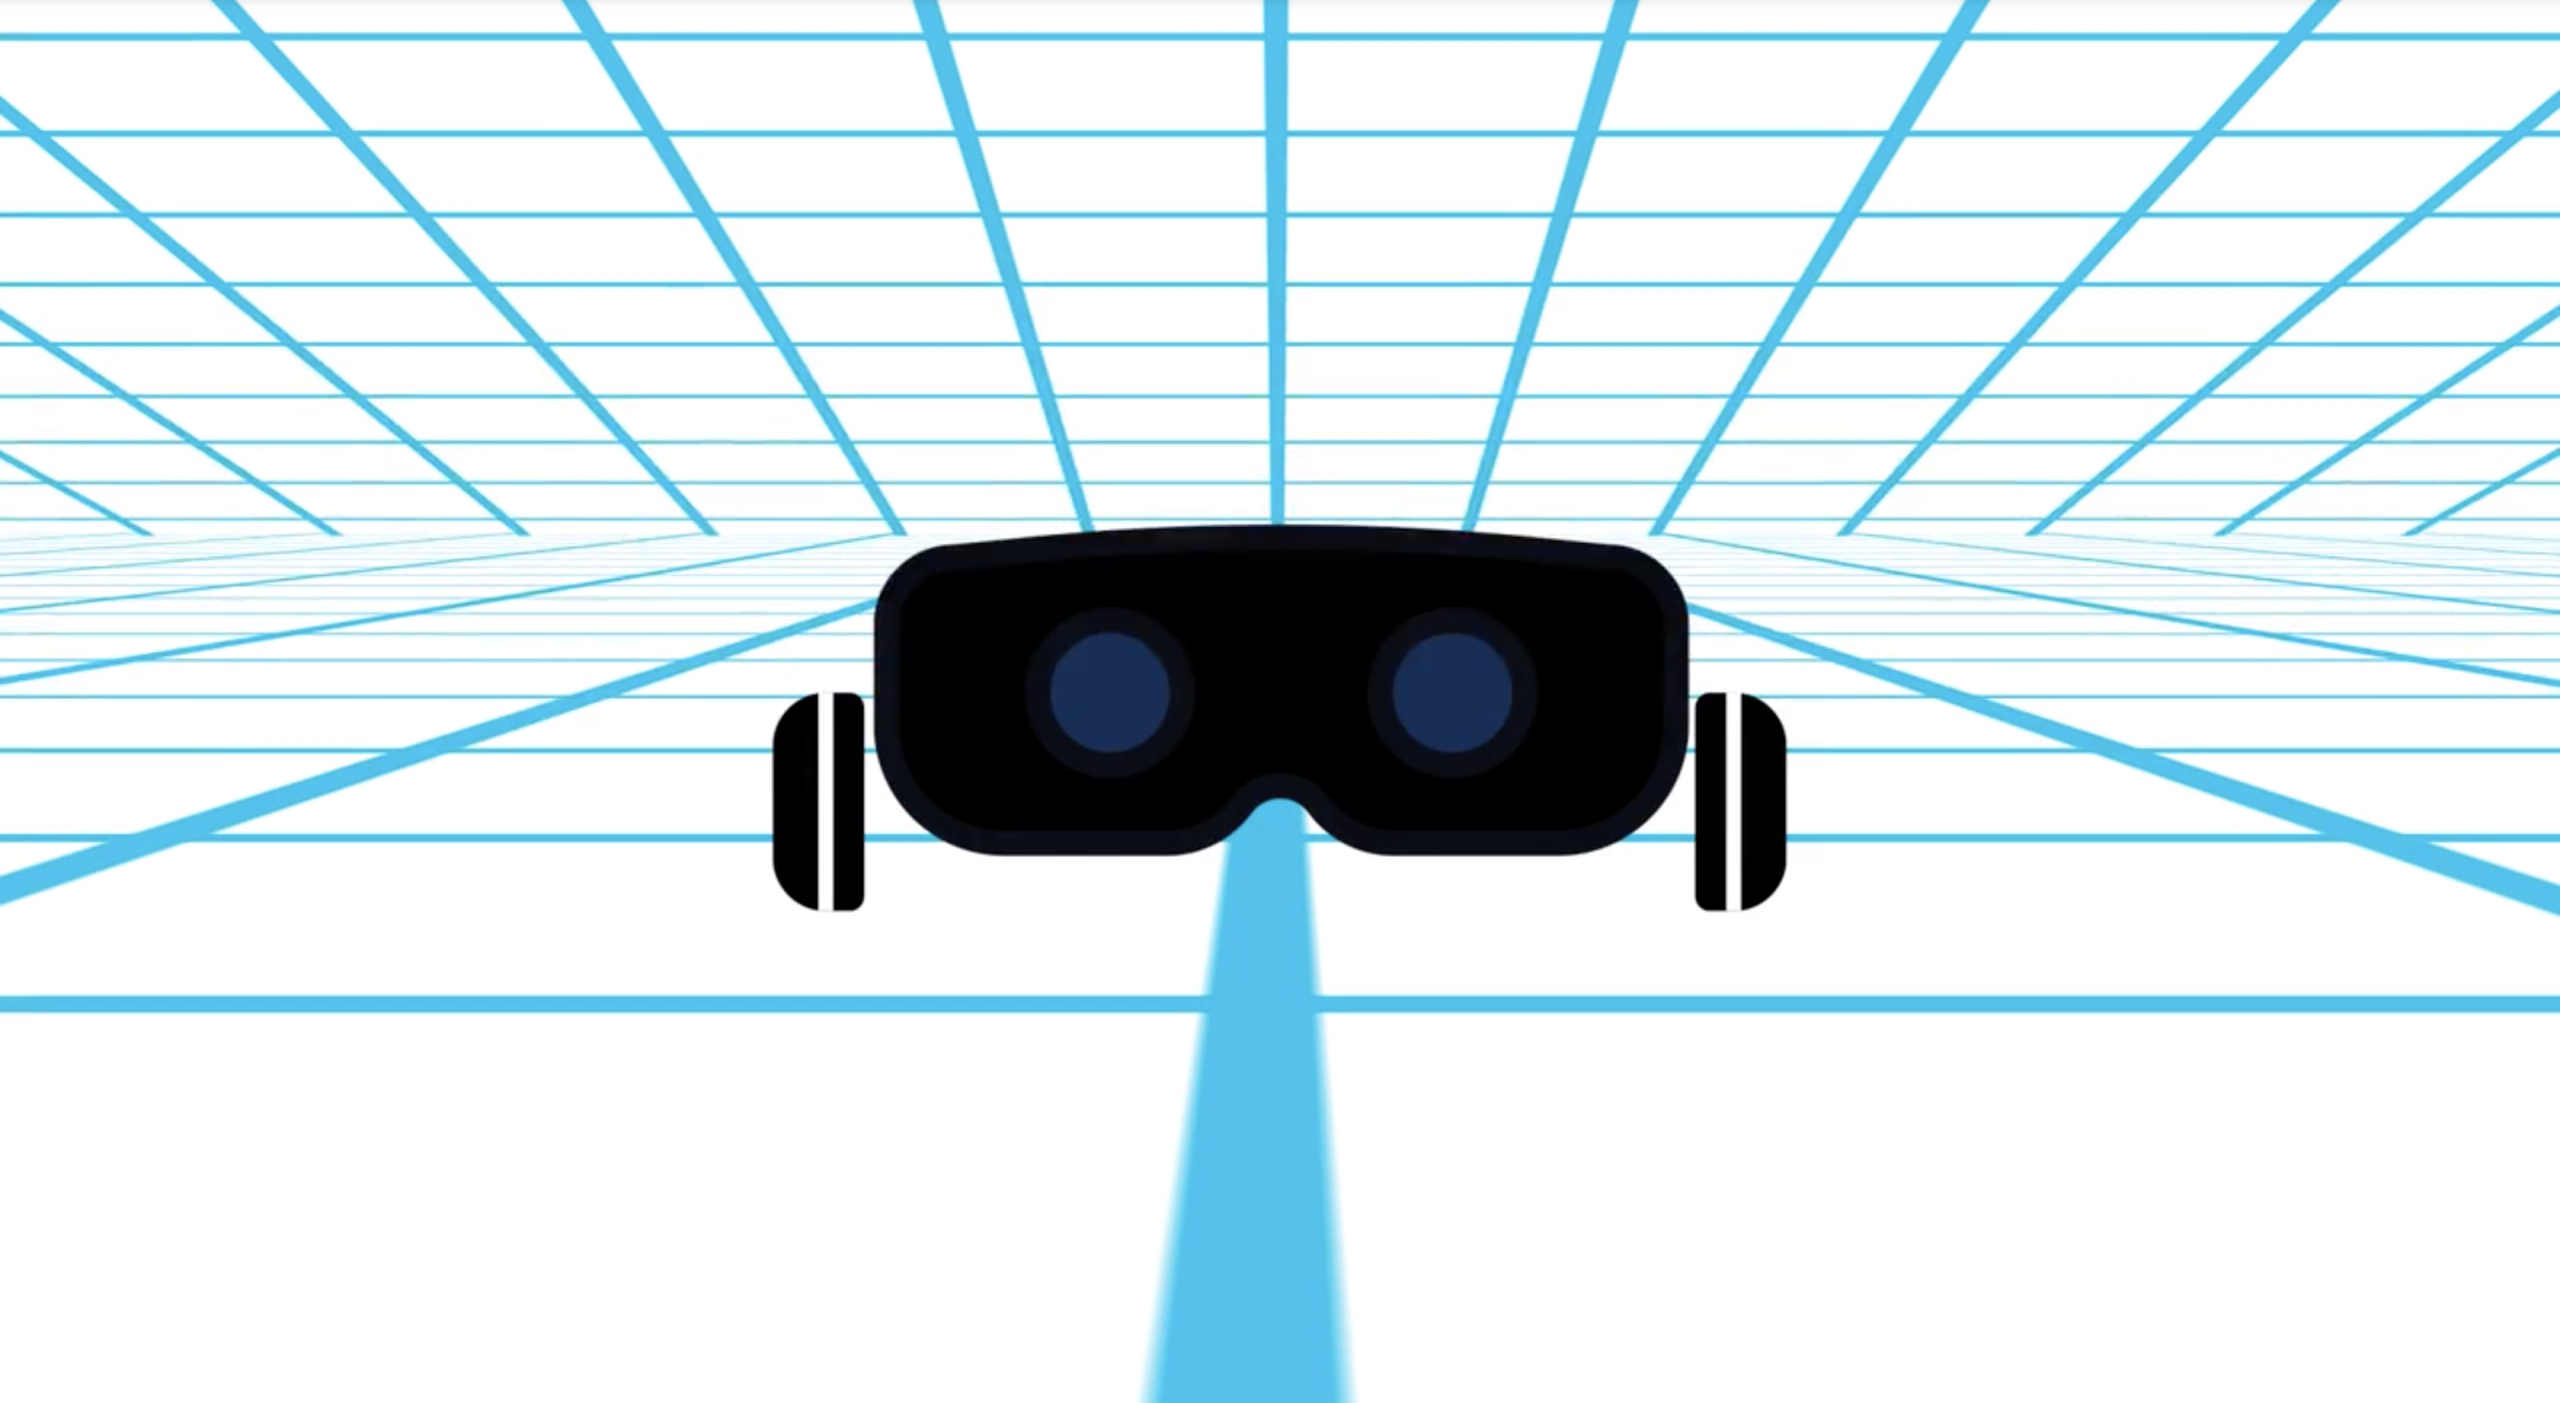 vr goggles in 3d